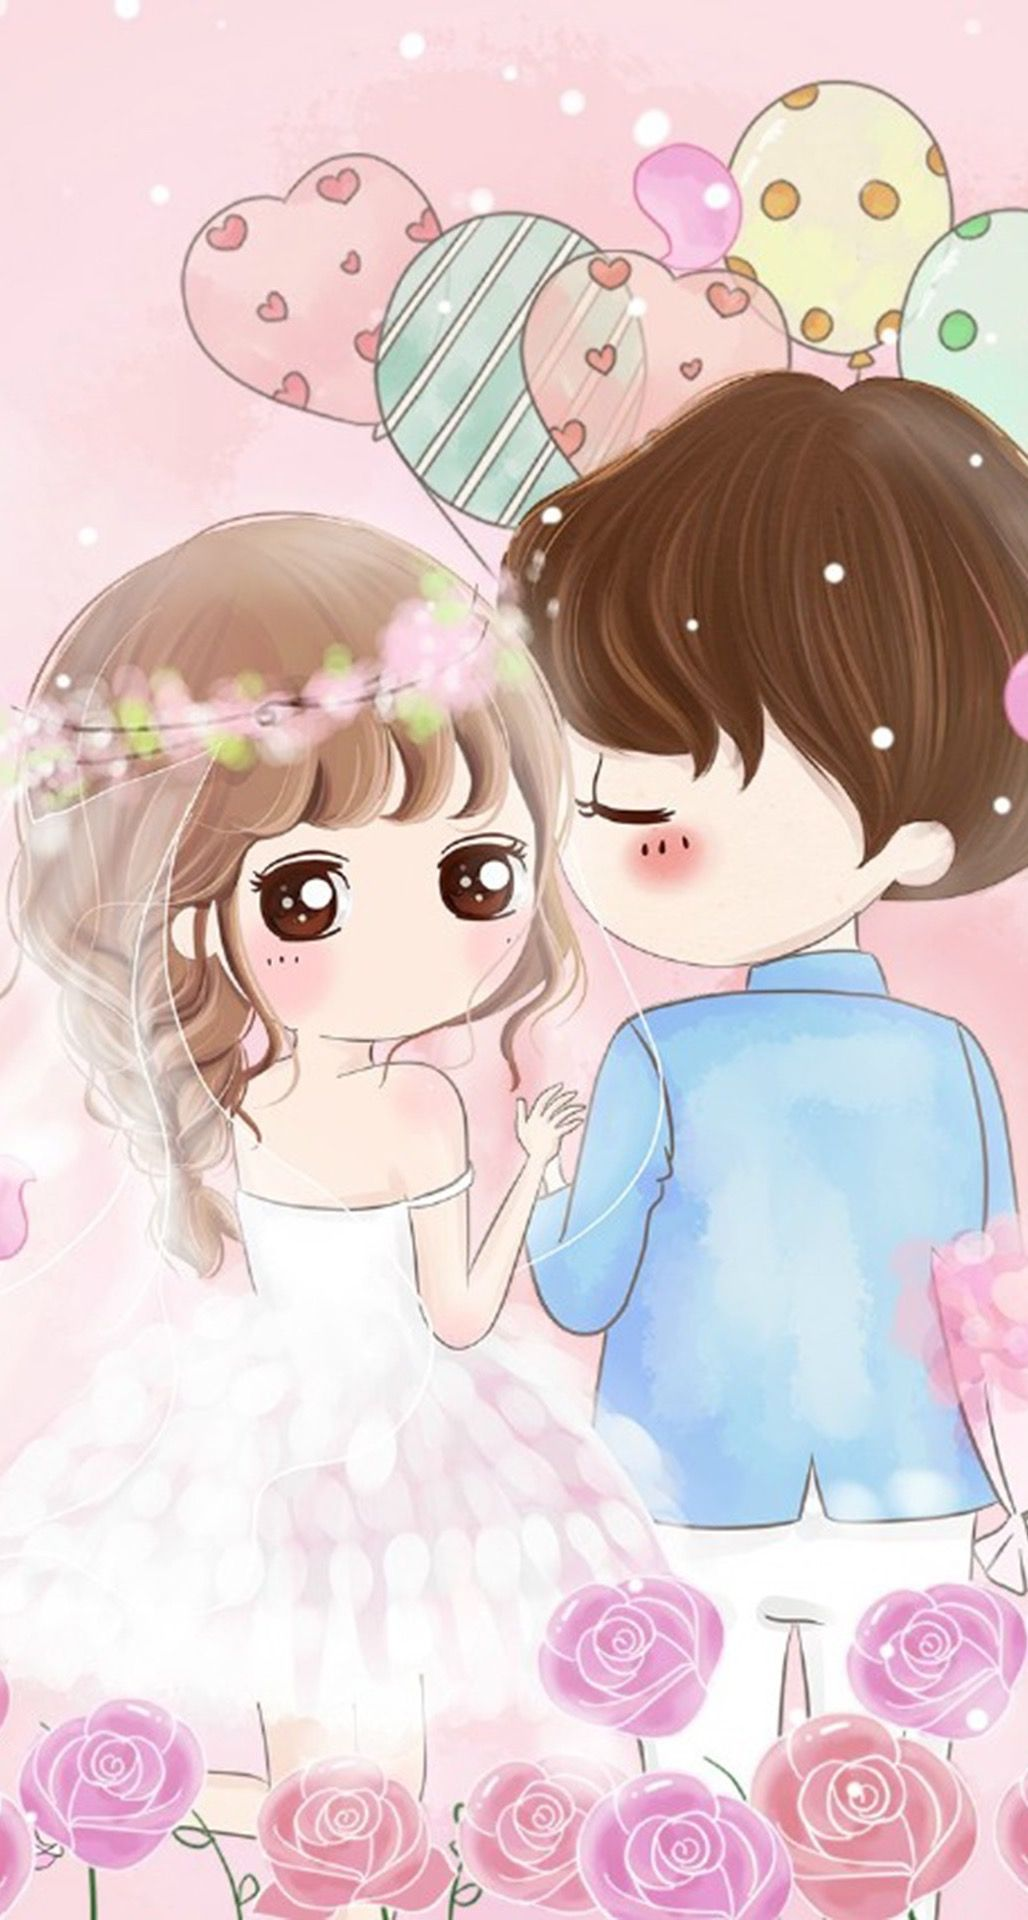 Cute anime couple wallpaper for iphone